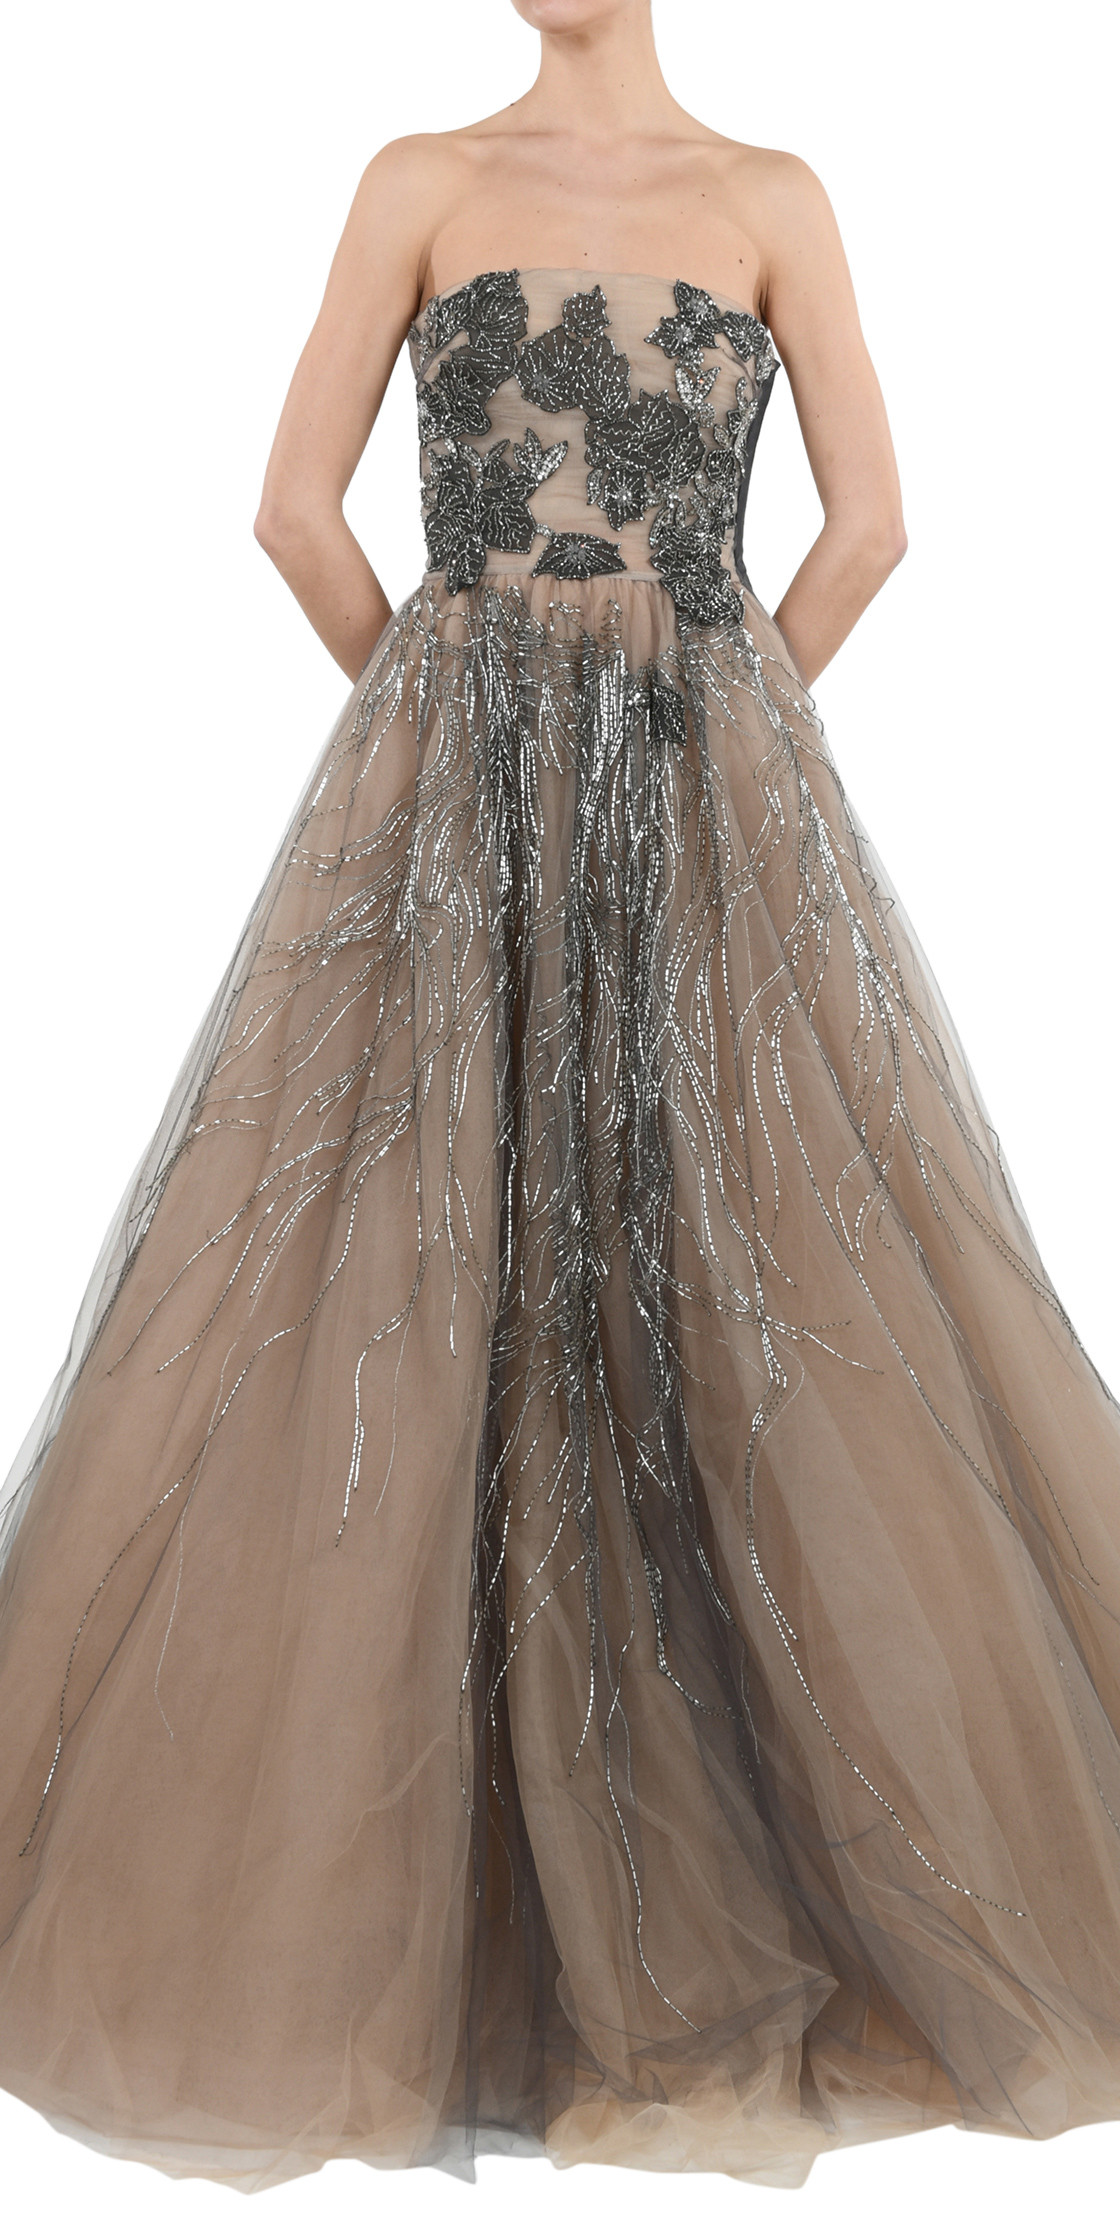 Valentino Embellished Strapless Tulle Gown   Evening Dress Rental ...